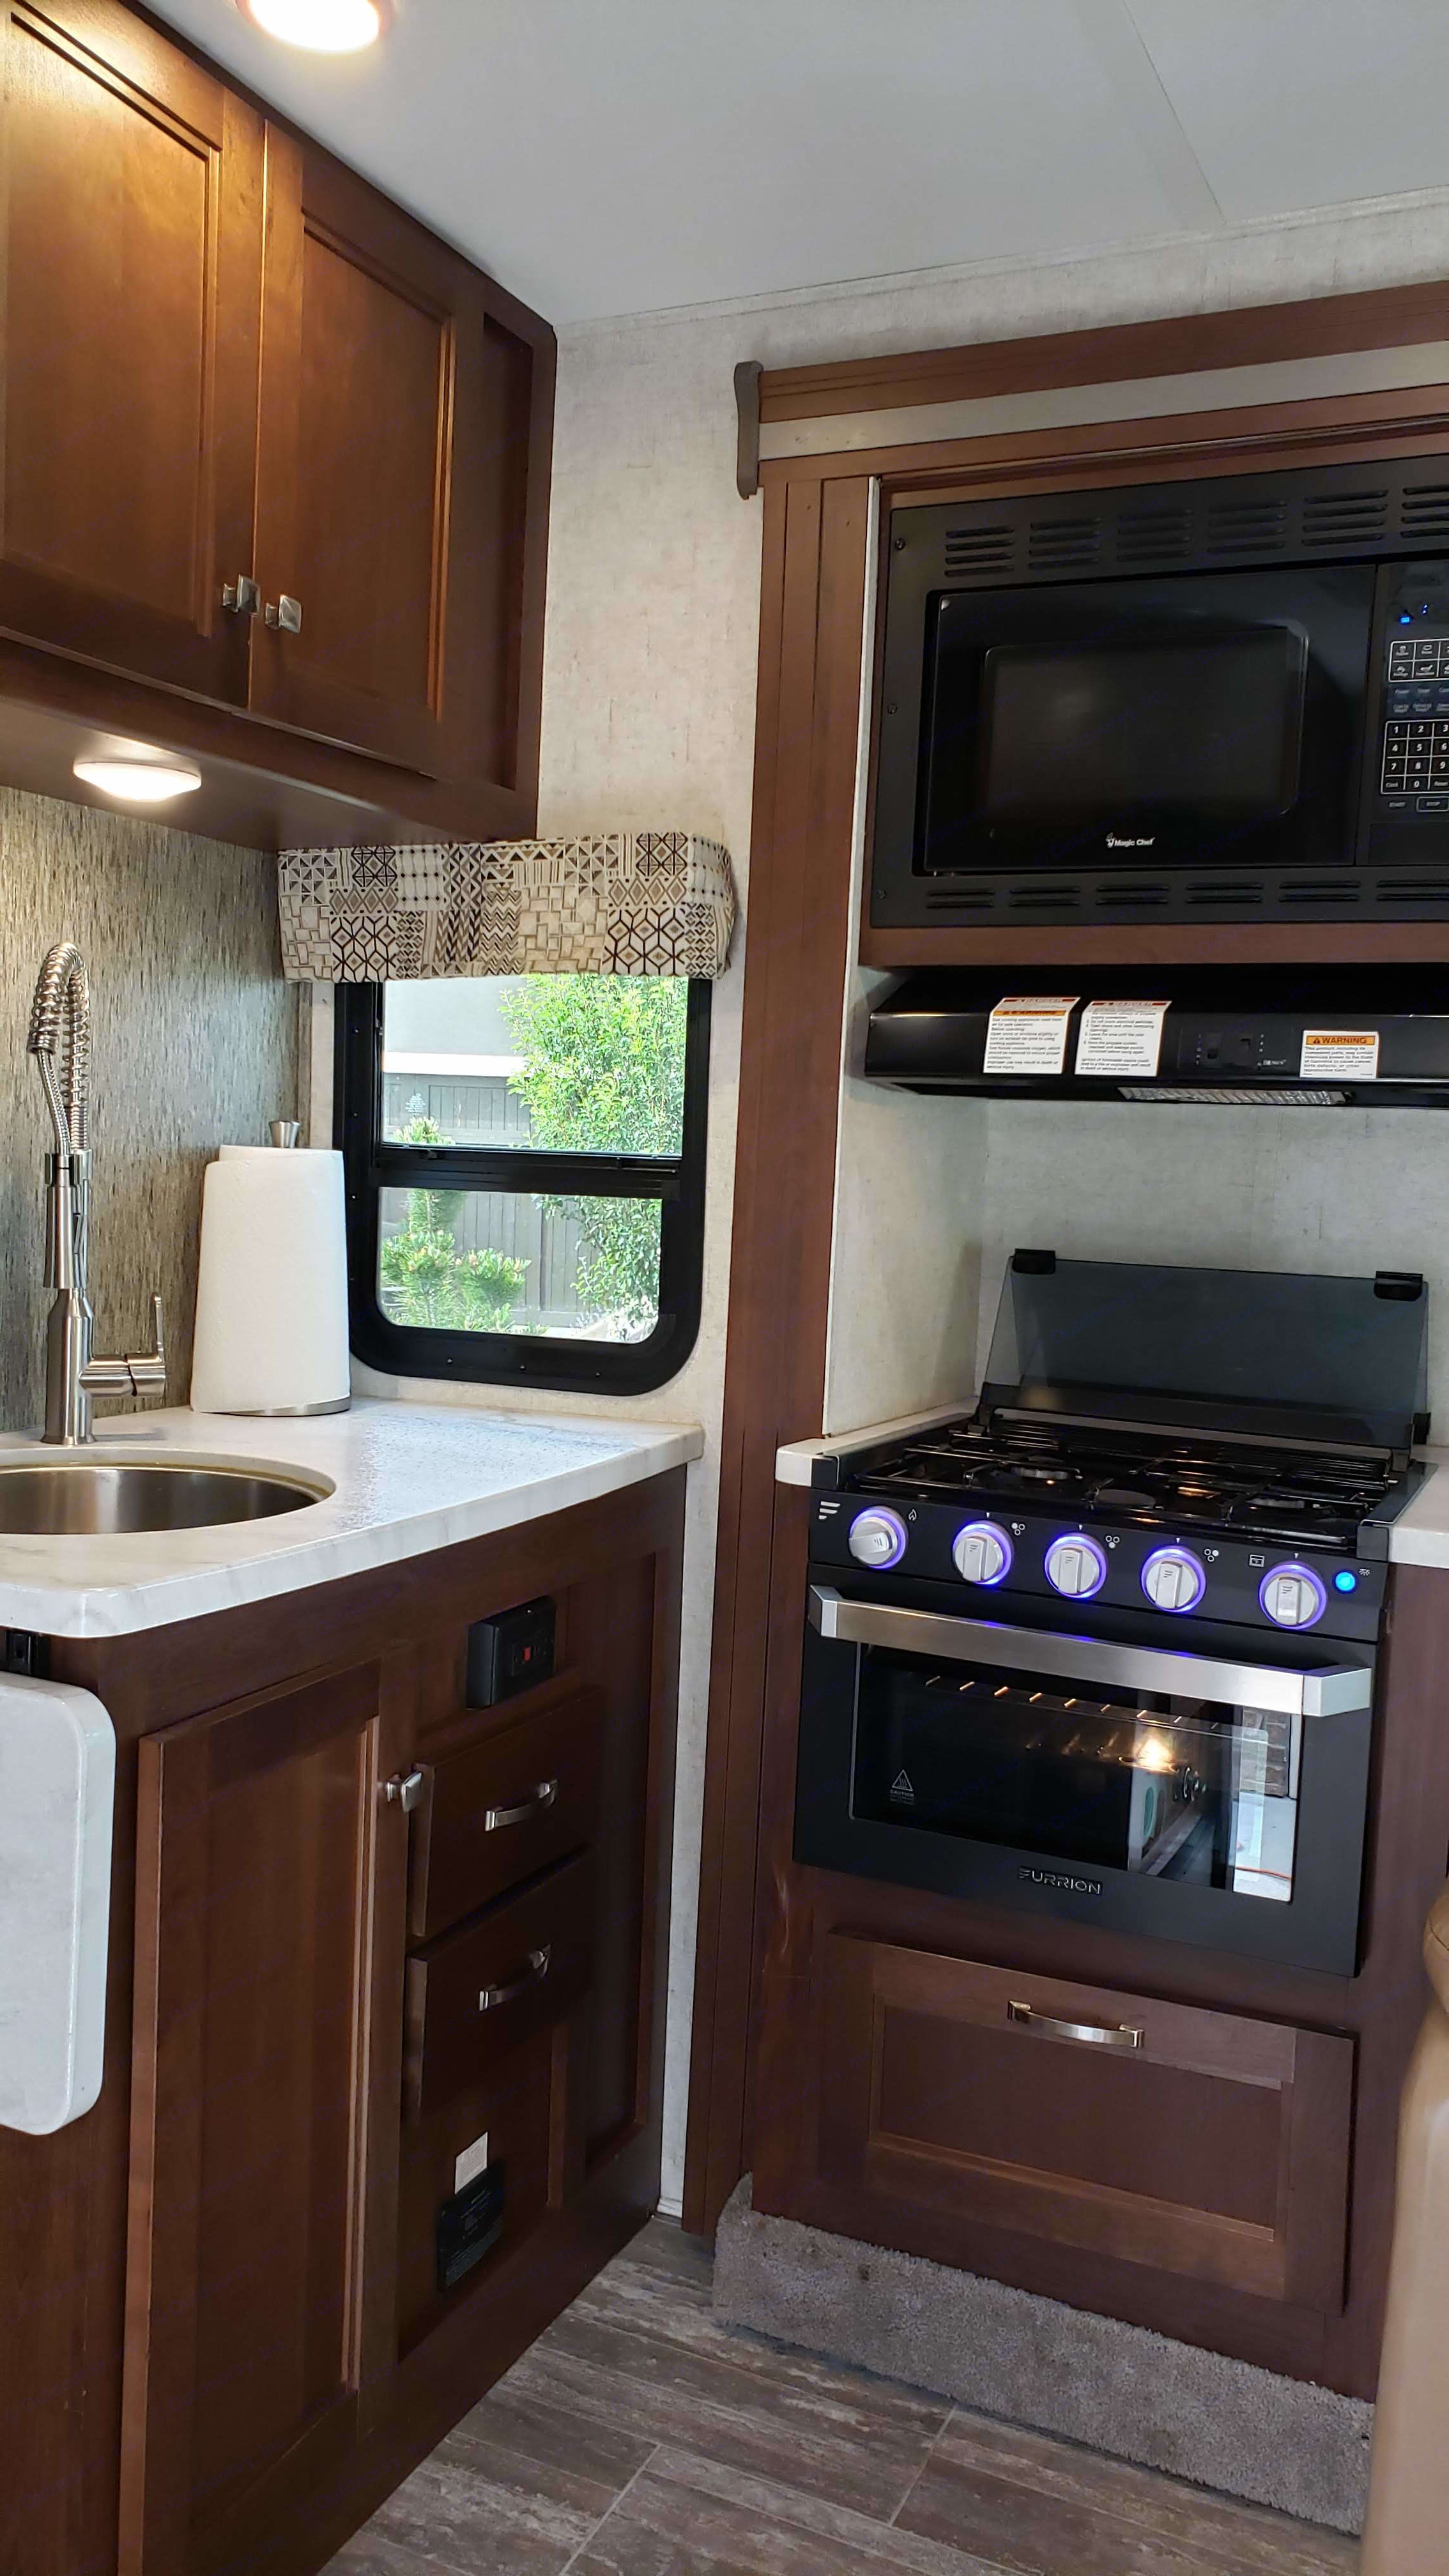 Kitchen with Stove, Oven, and Microwave. Forest River Sunseeker 2019